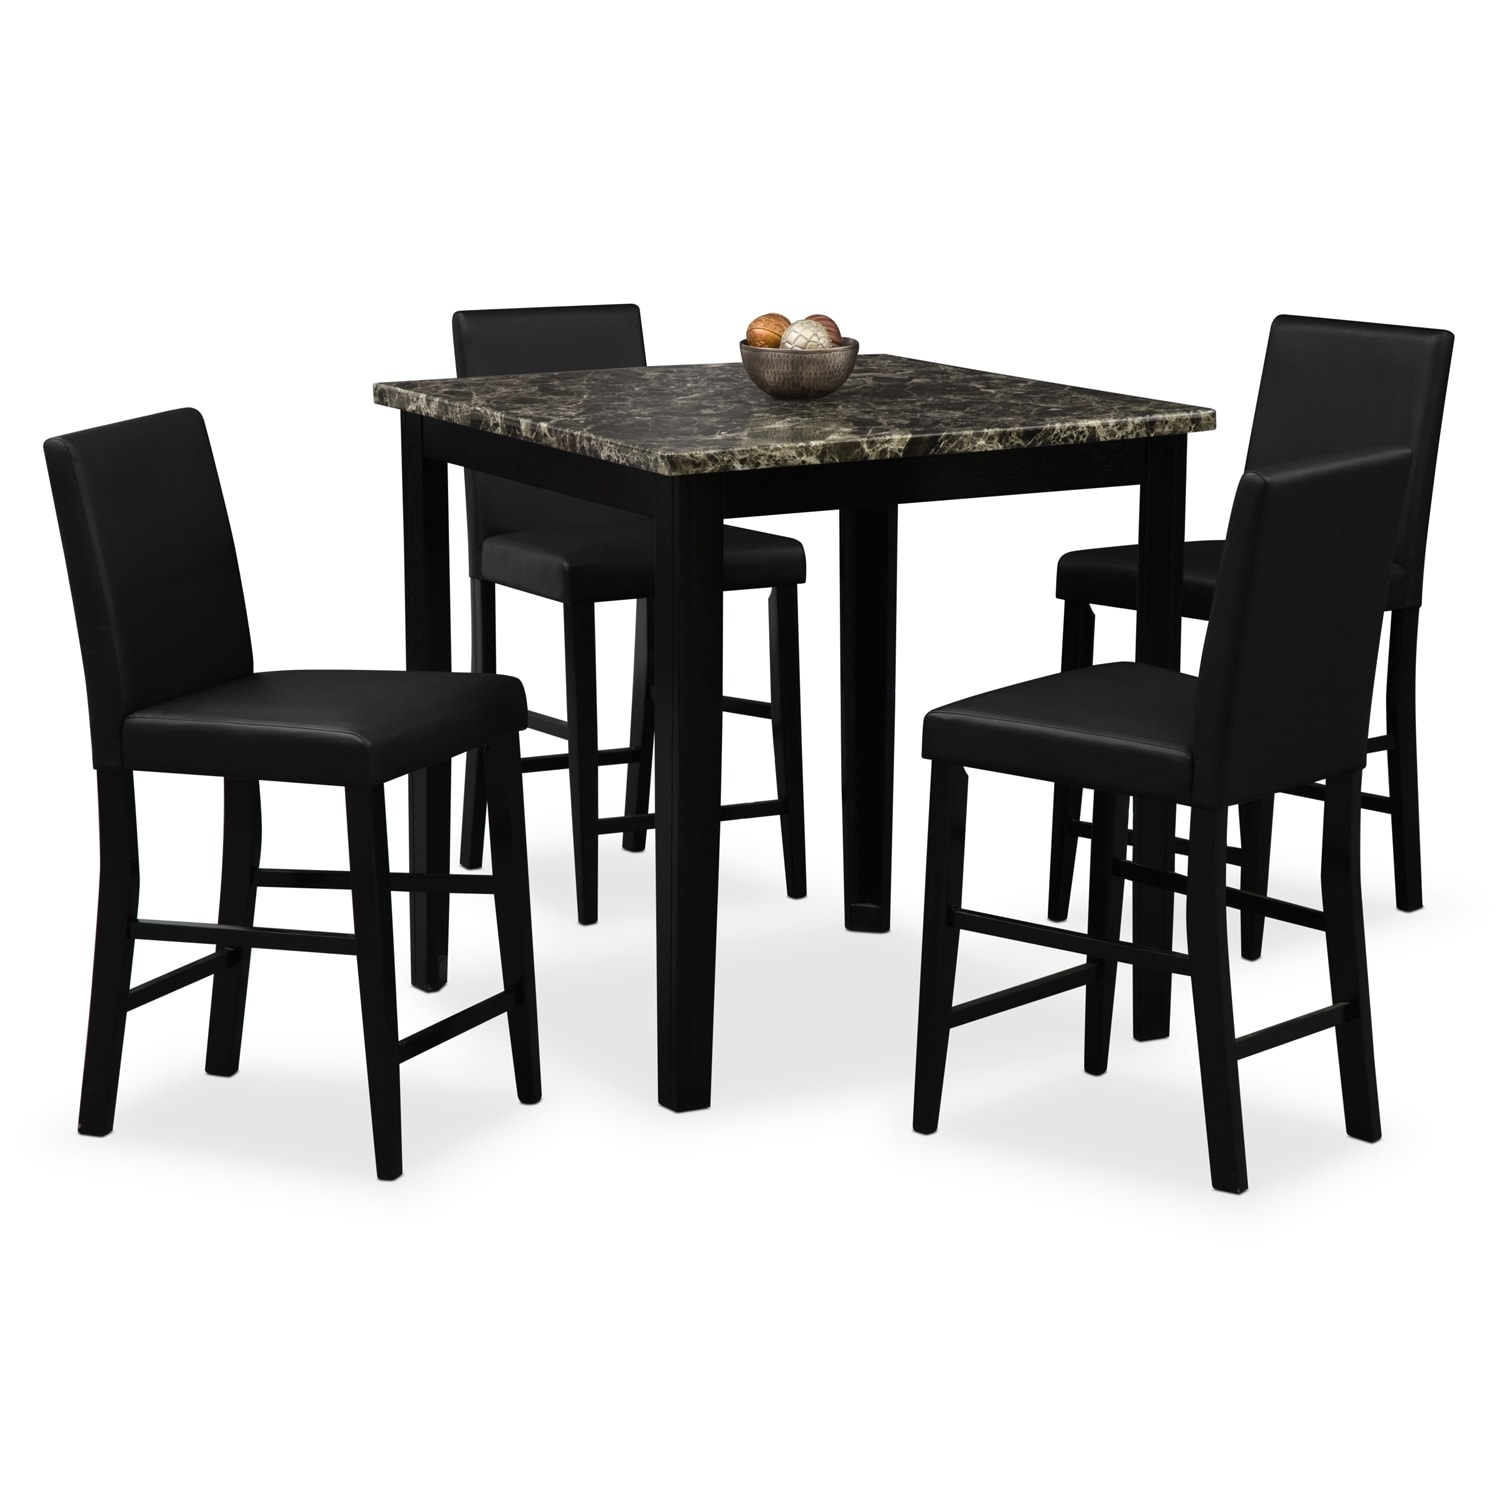 Shadow Counter Height Table And 4 Chairs Black Value City Furniture And Mattresses